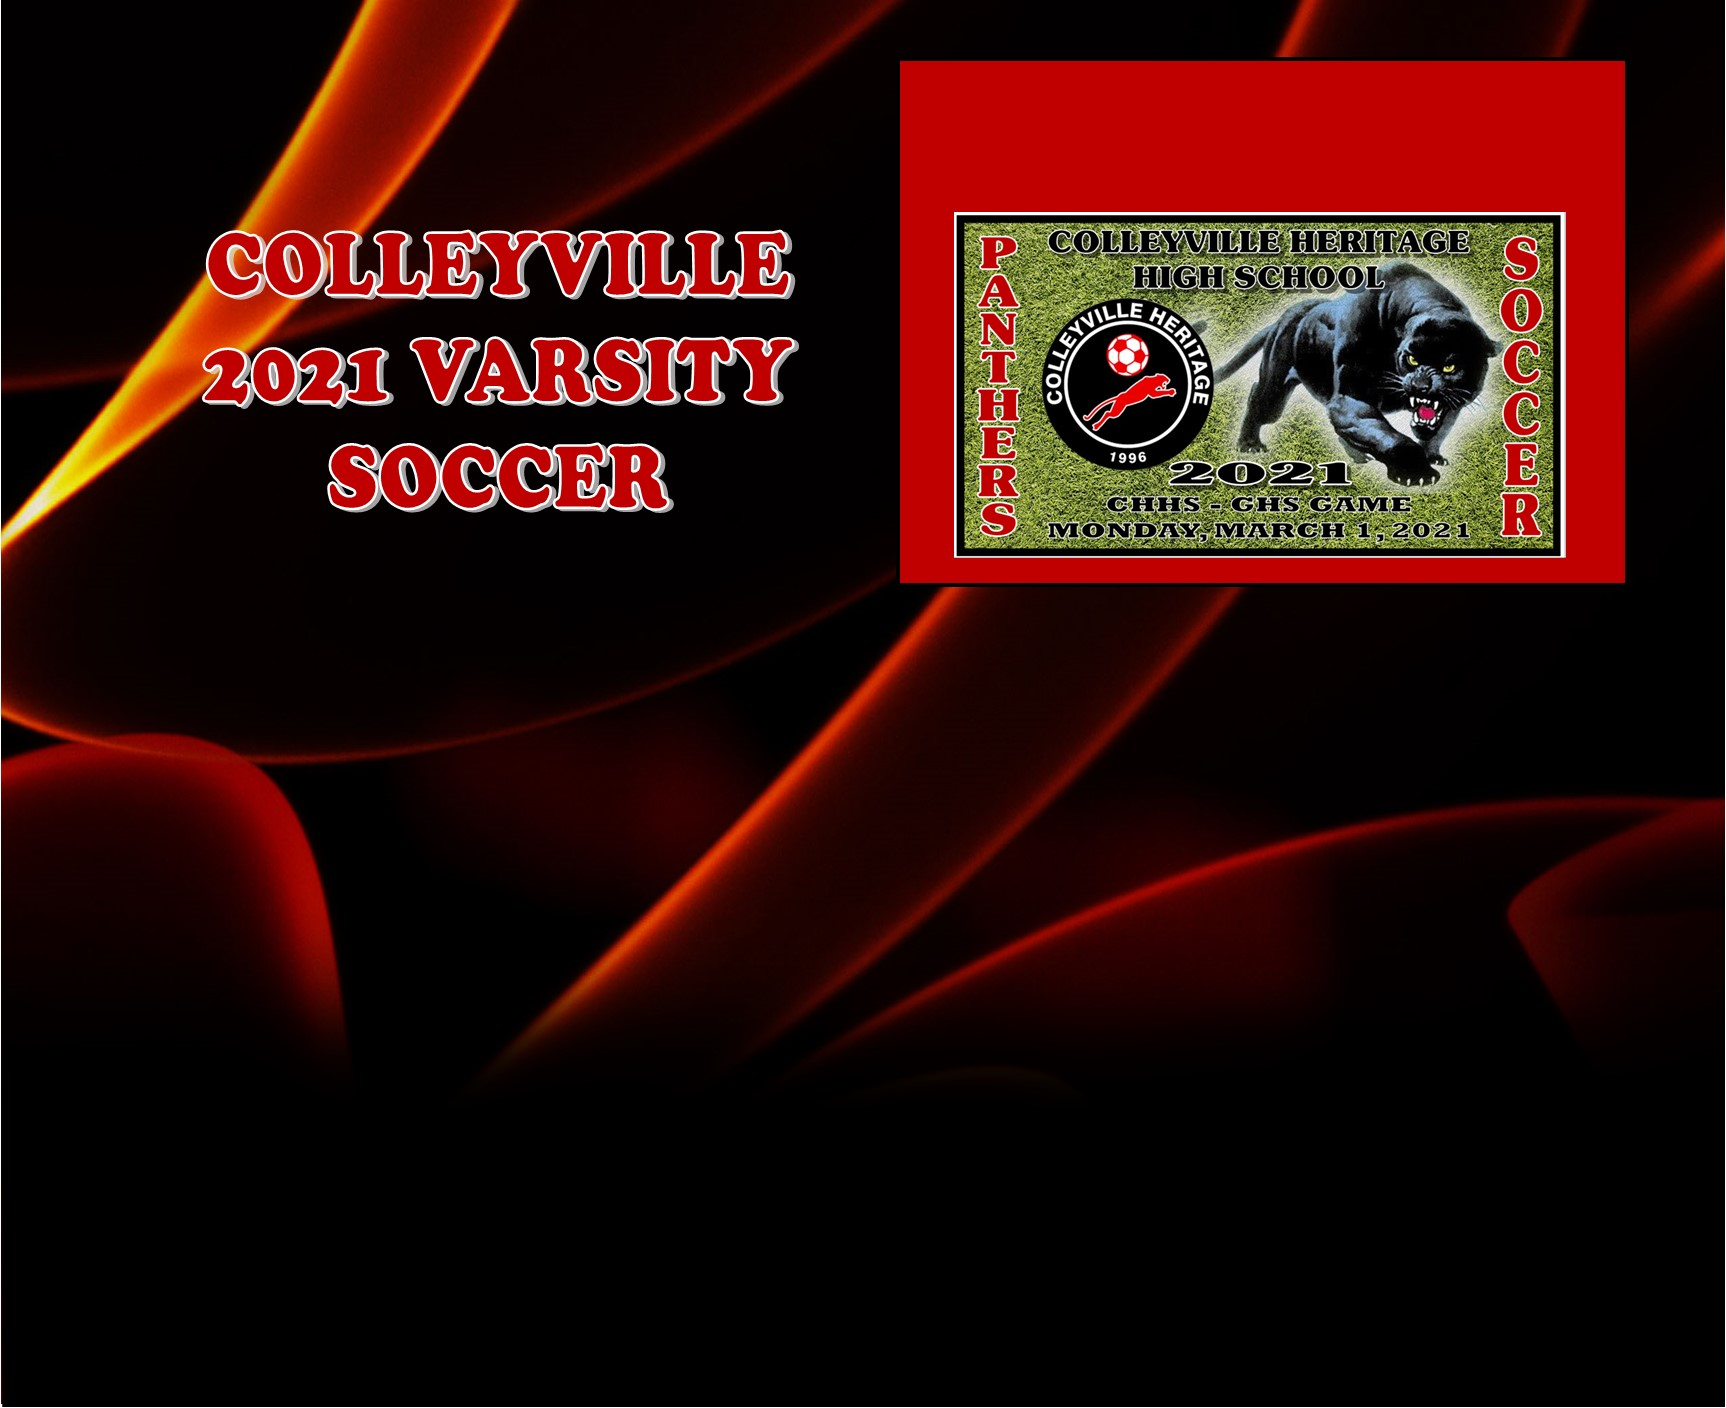 GCISD Soccer: Colleyville Panthers Upset by Rival Grapevine Mustangs 1-2